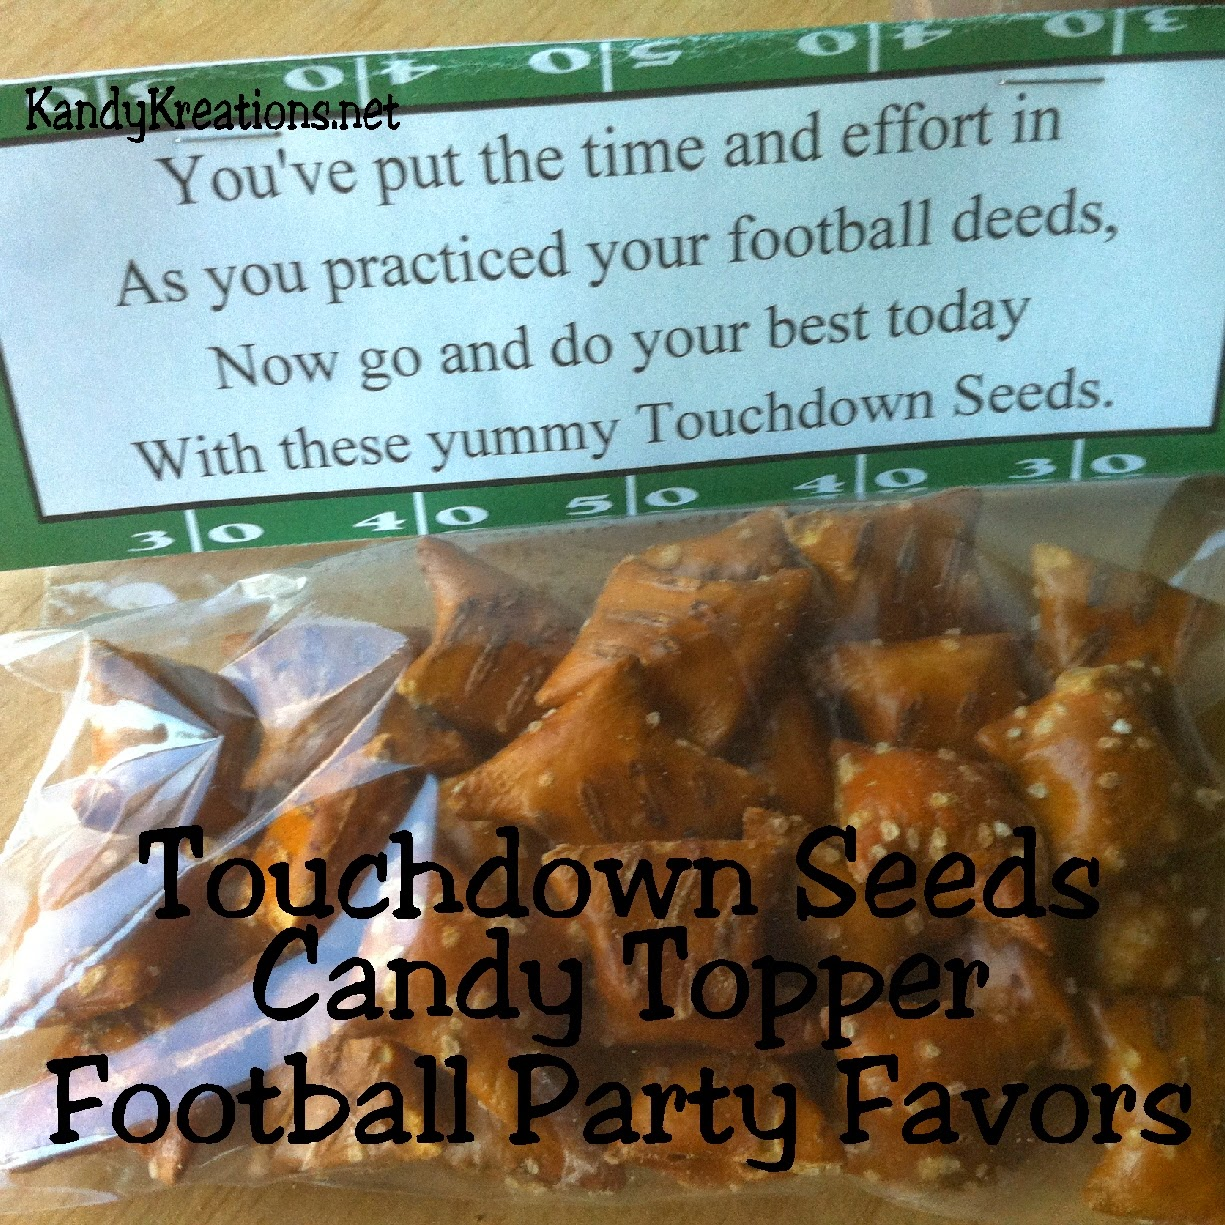 Touchdown Seeds Football Party Favors Printable by Kandy Kreations